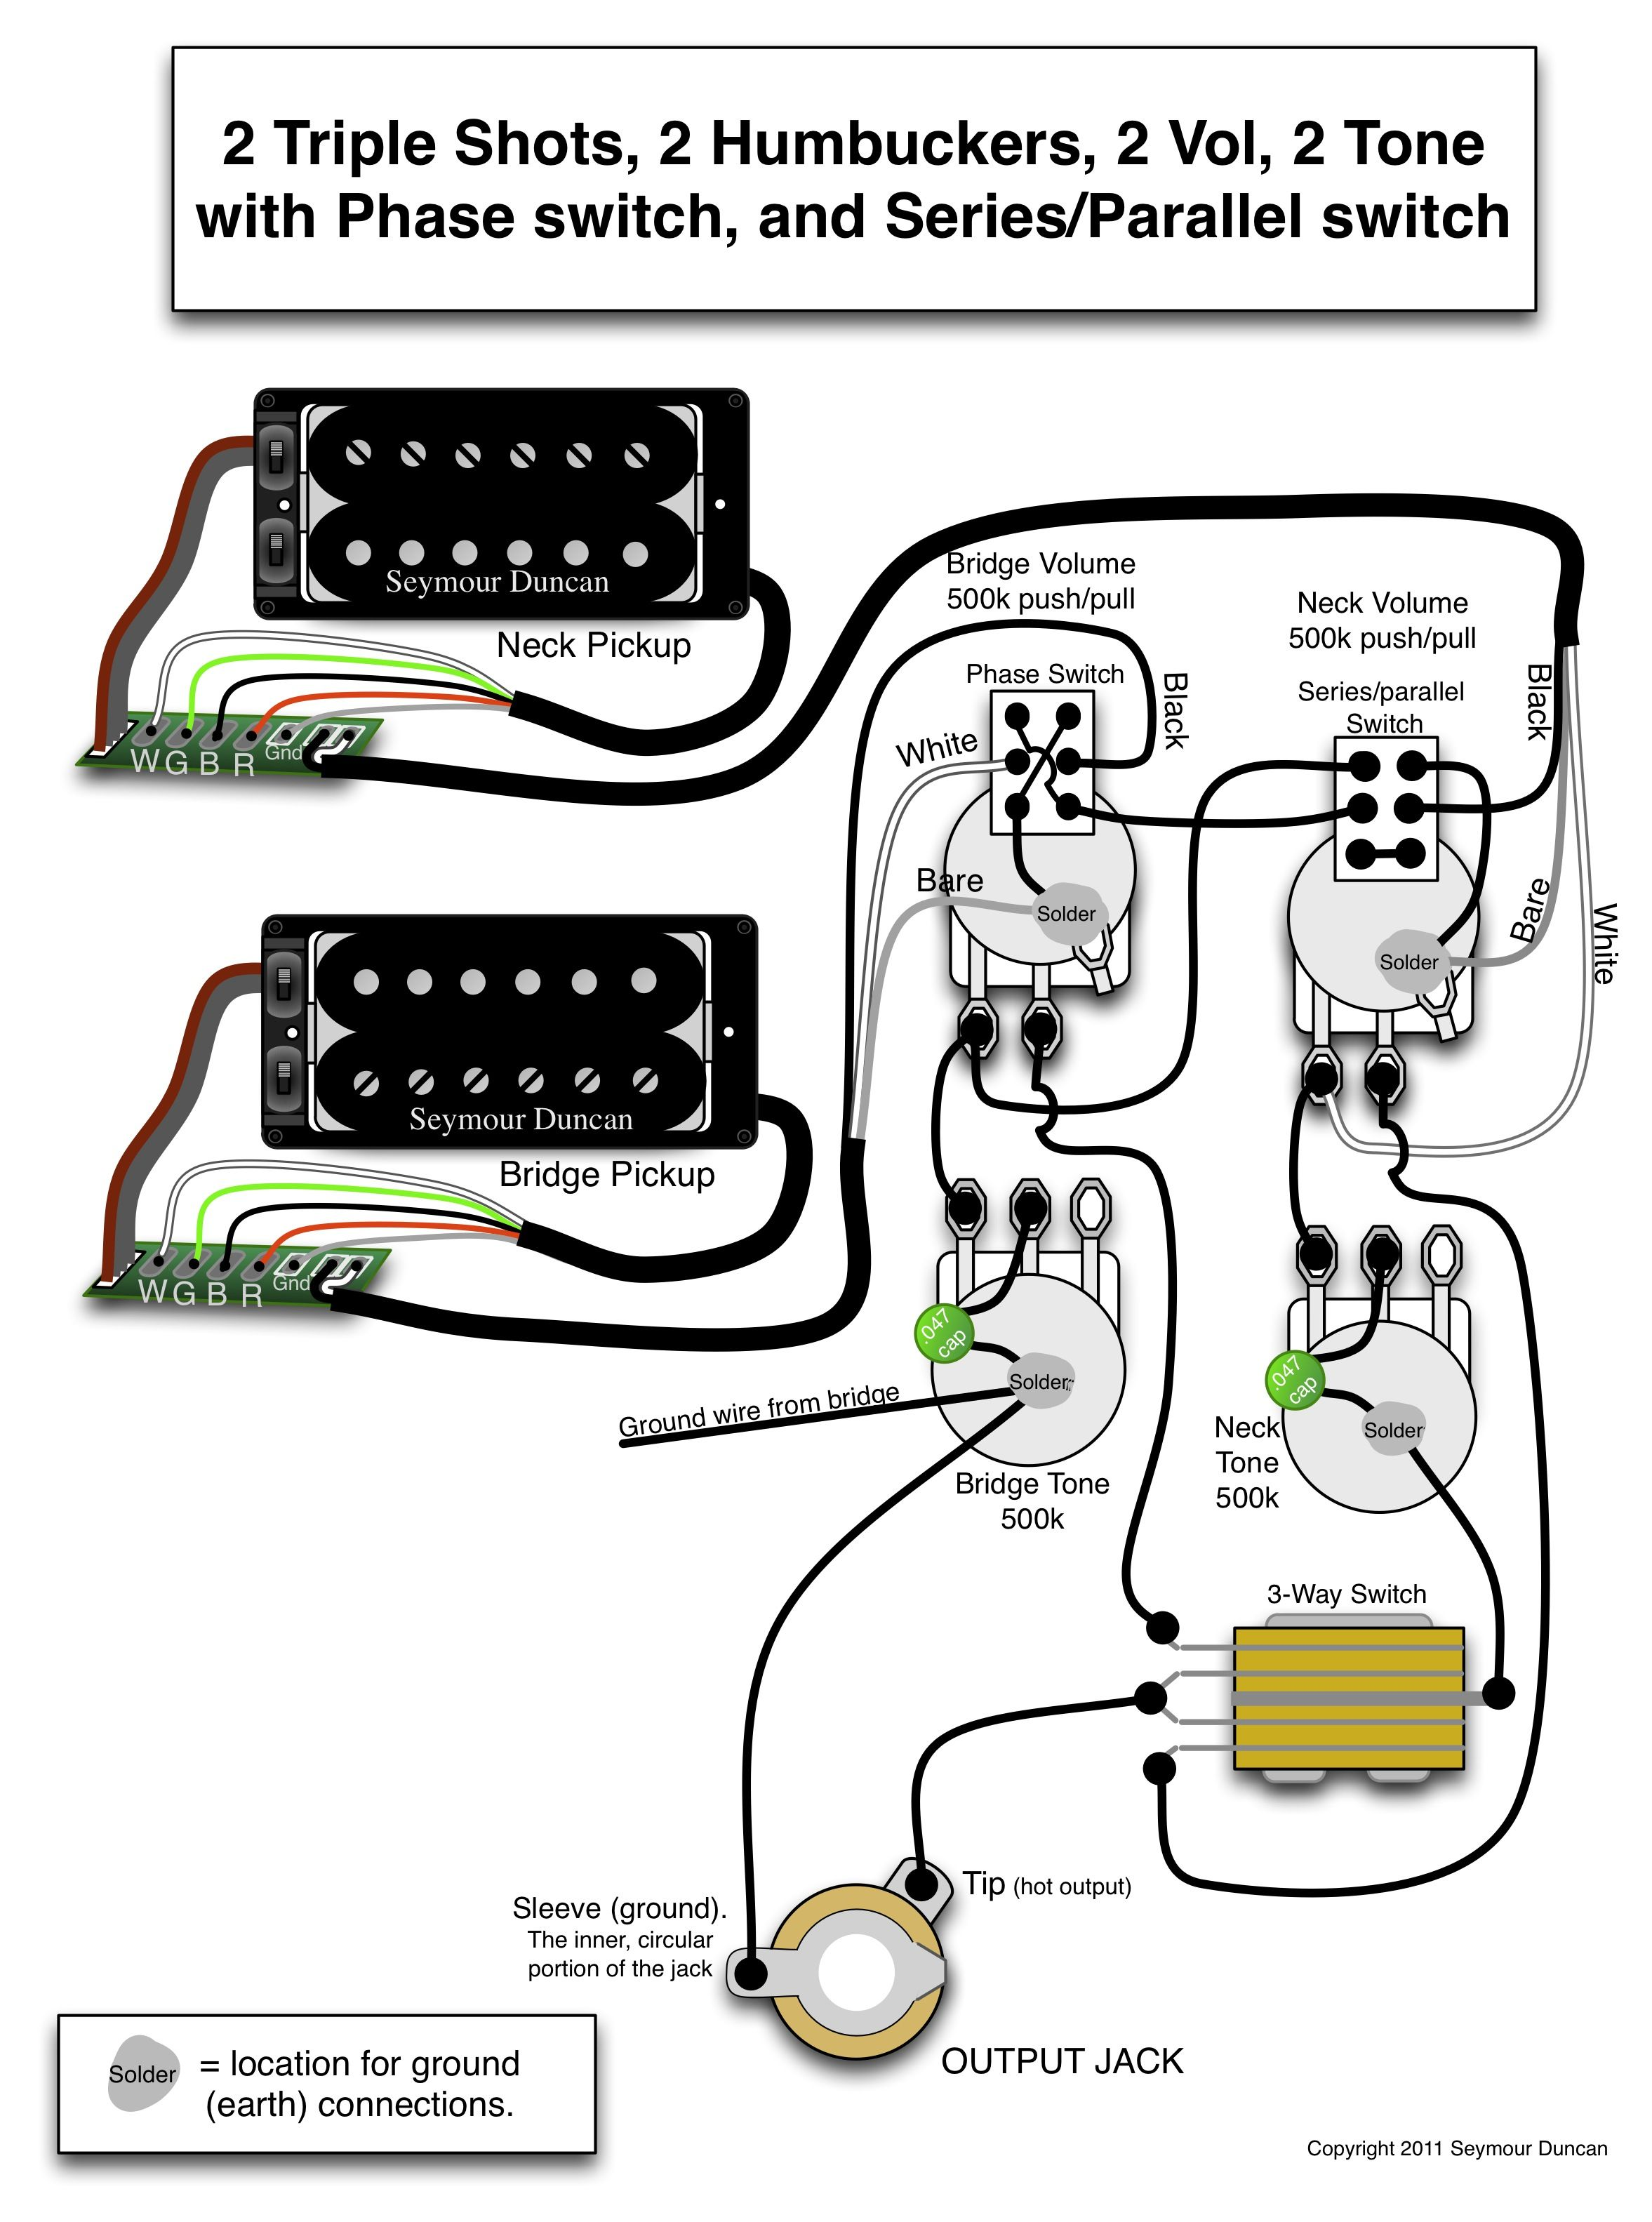 Mandolin Pickup Wiring Bookmark About Diagram Fishman Seymour Duncan 2 Triple Shots Humbuckers Vol Rh Pinterest Com Picks Clip On For